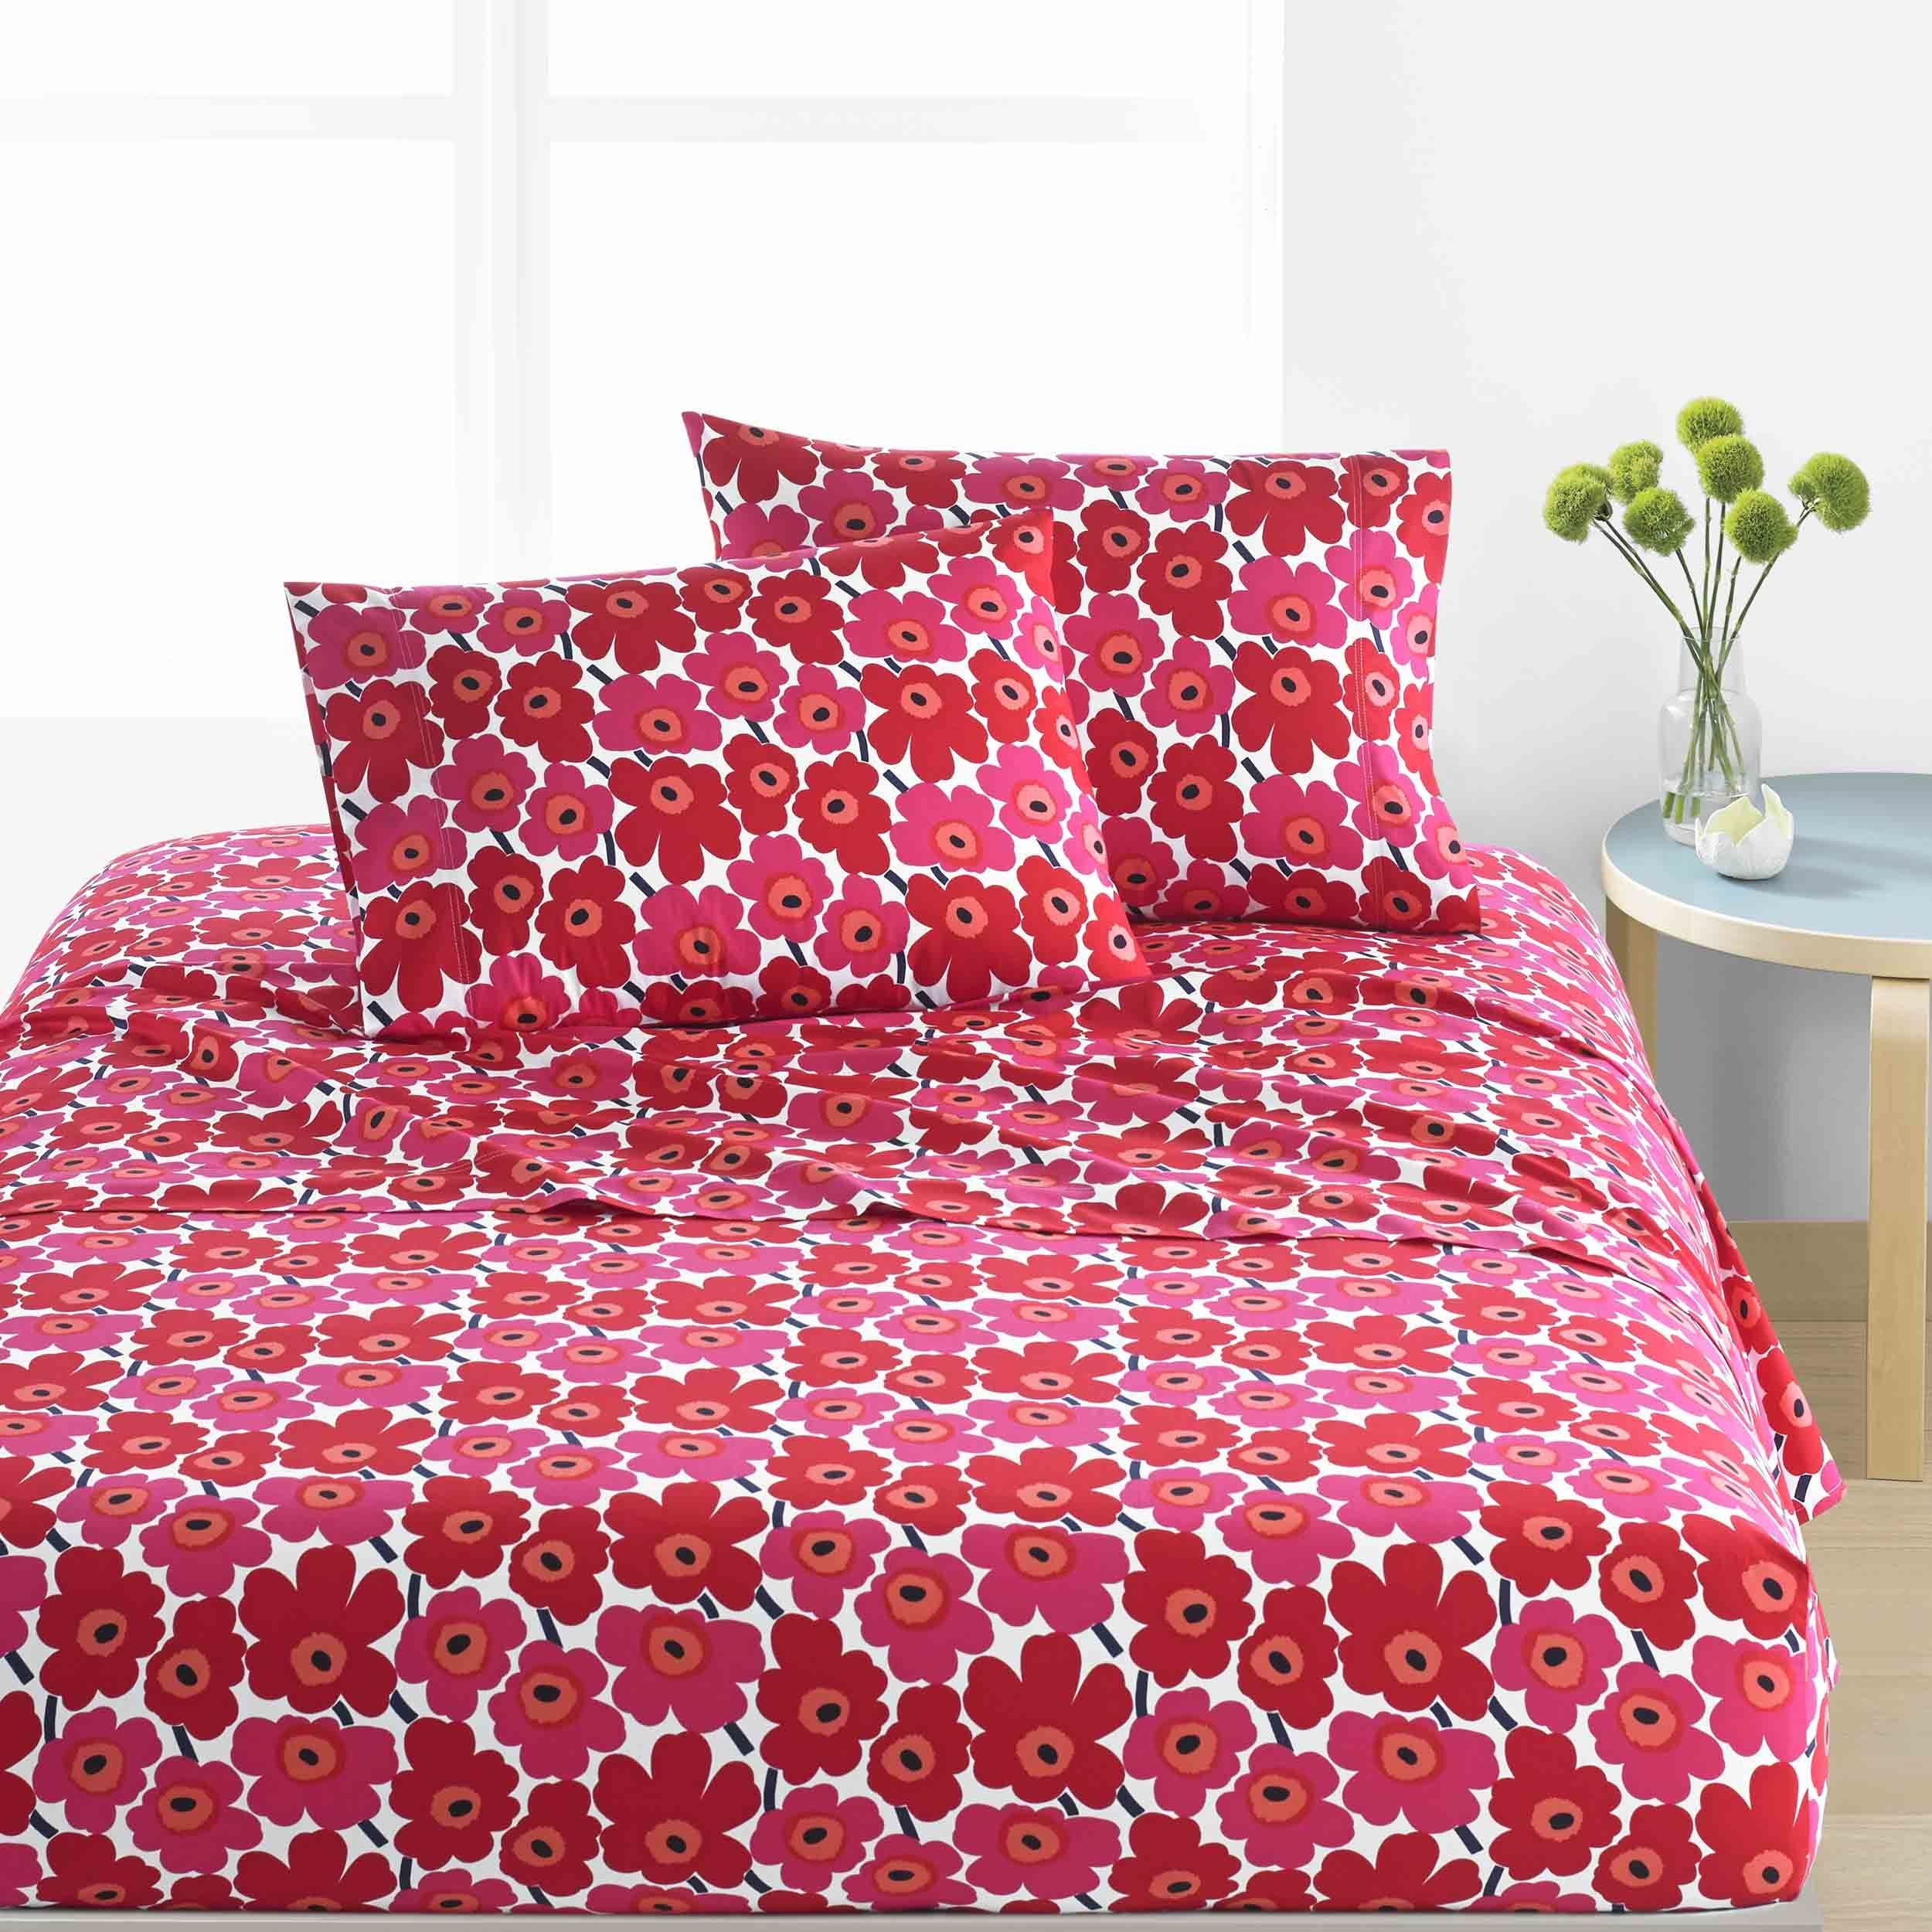 outdoors bed of bo marimekko out oz odor amazon pillows pin t etsy bac health abdl diapers bengtsson by and fresh biokleen bedding stain on remover